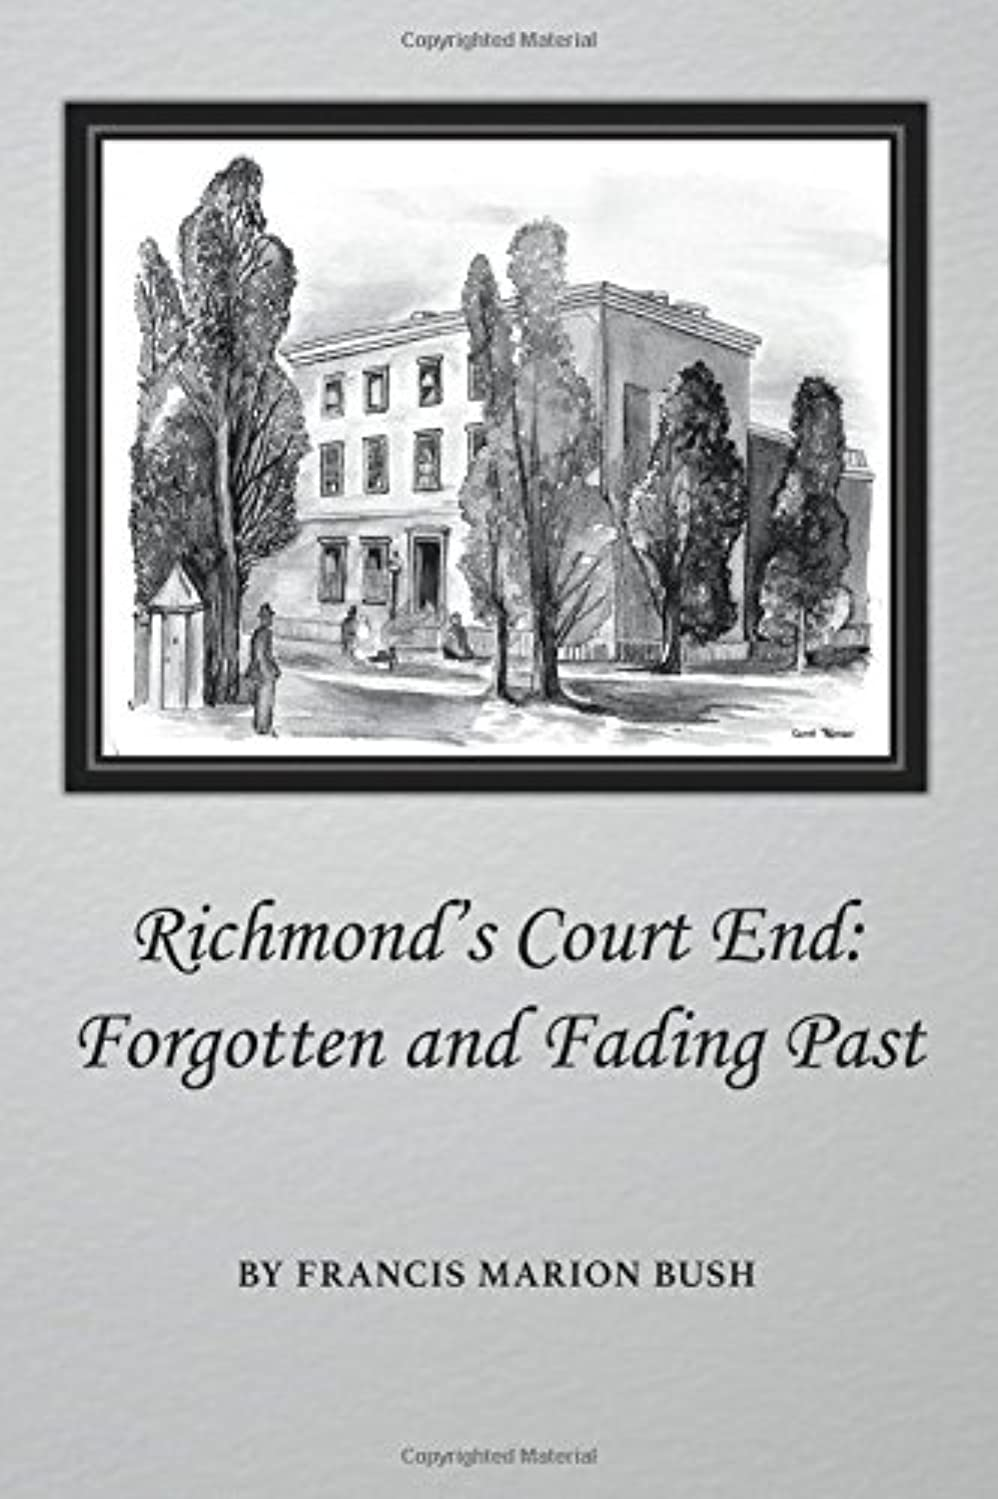 Richmond's Court End: Forgotten and Fading Past